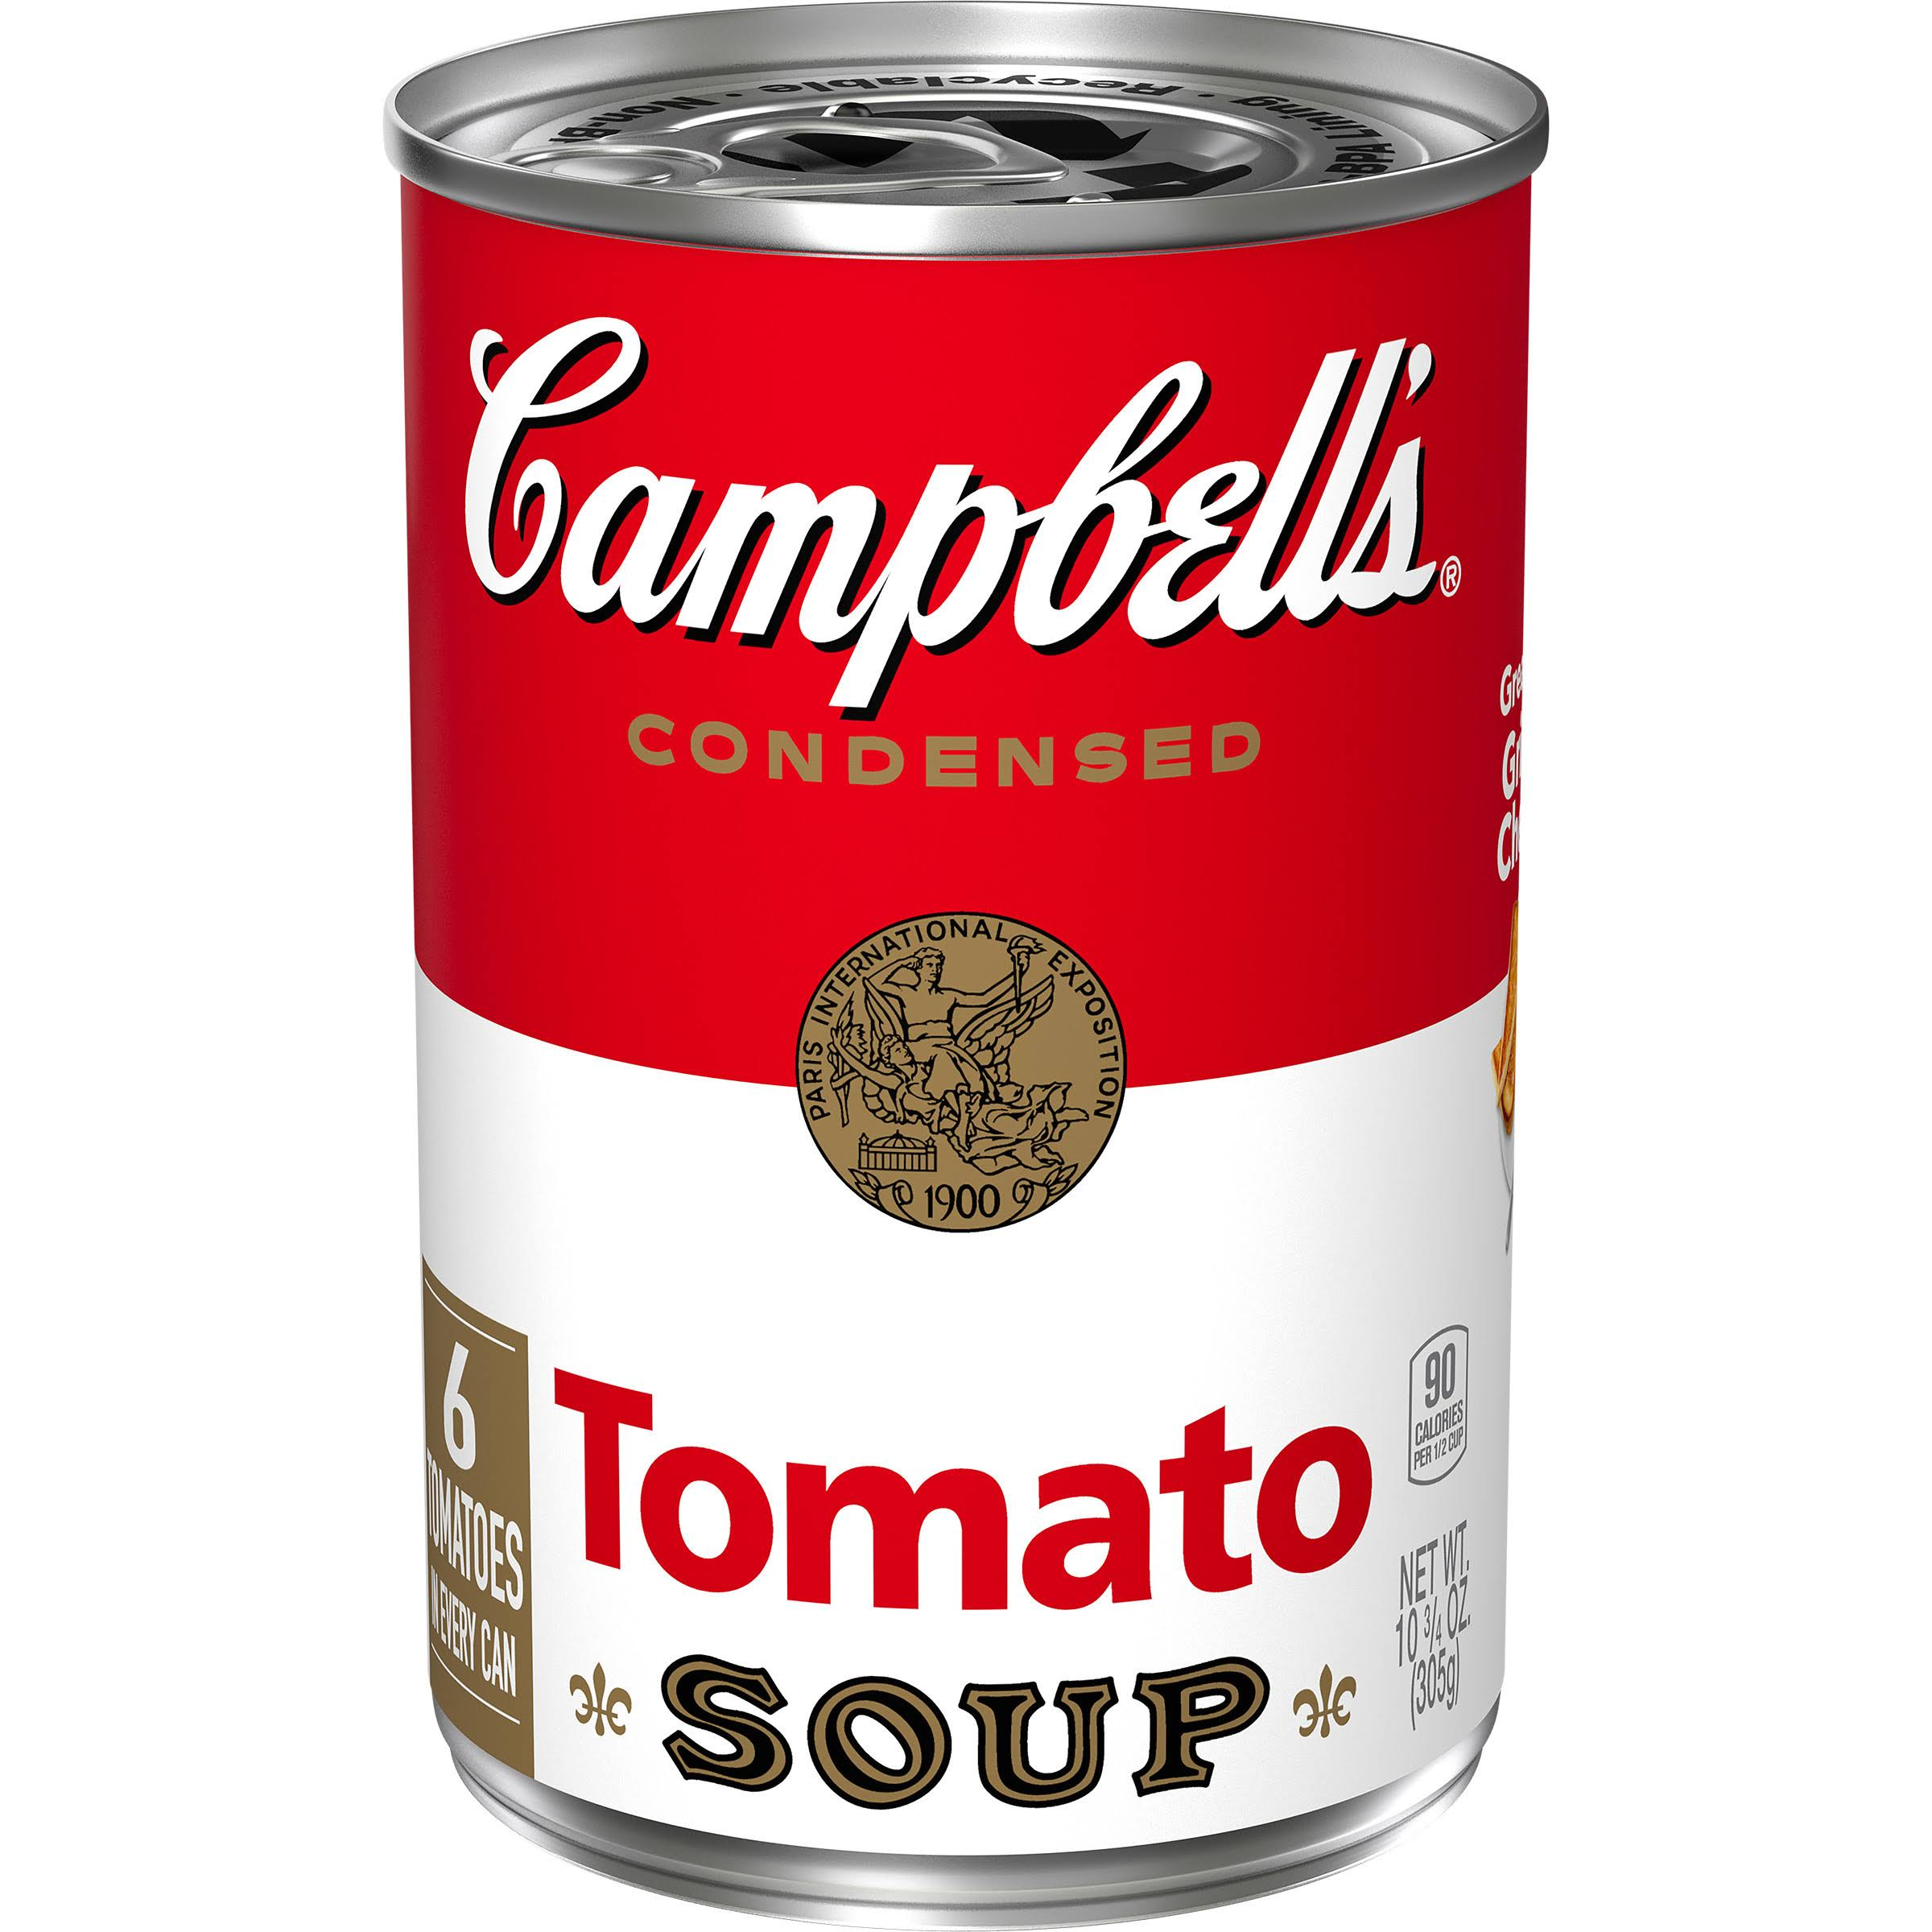 Campbells Tomato Soup - 305g